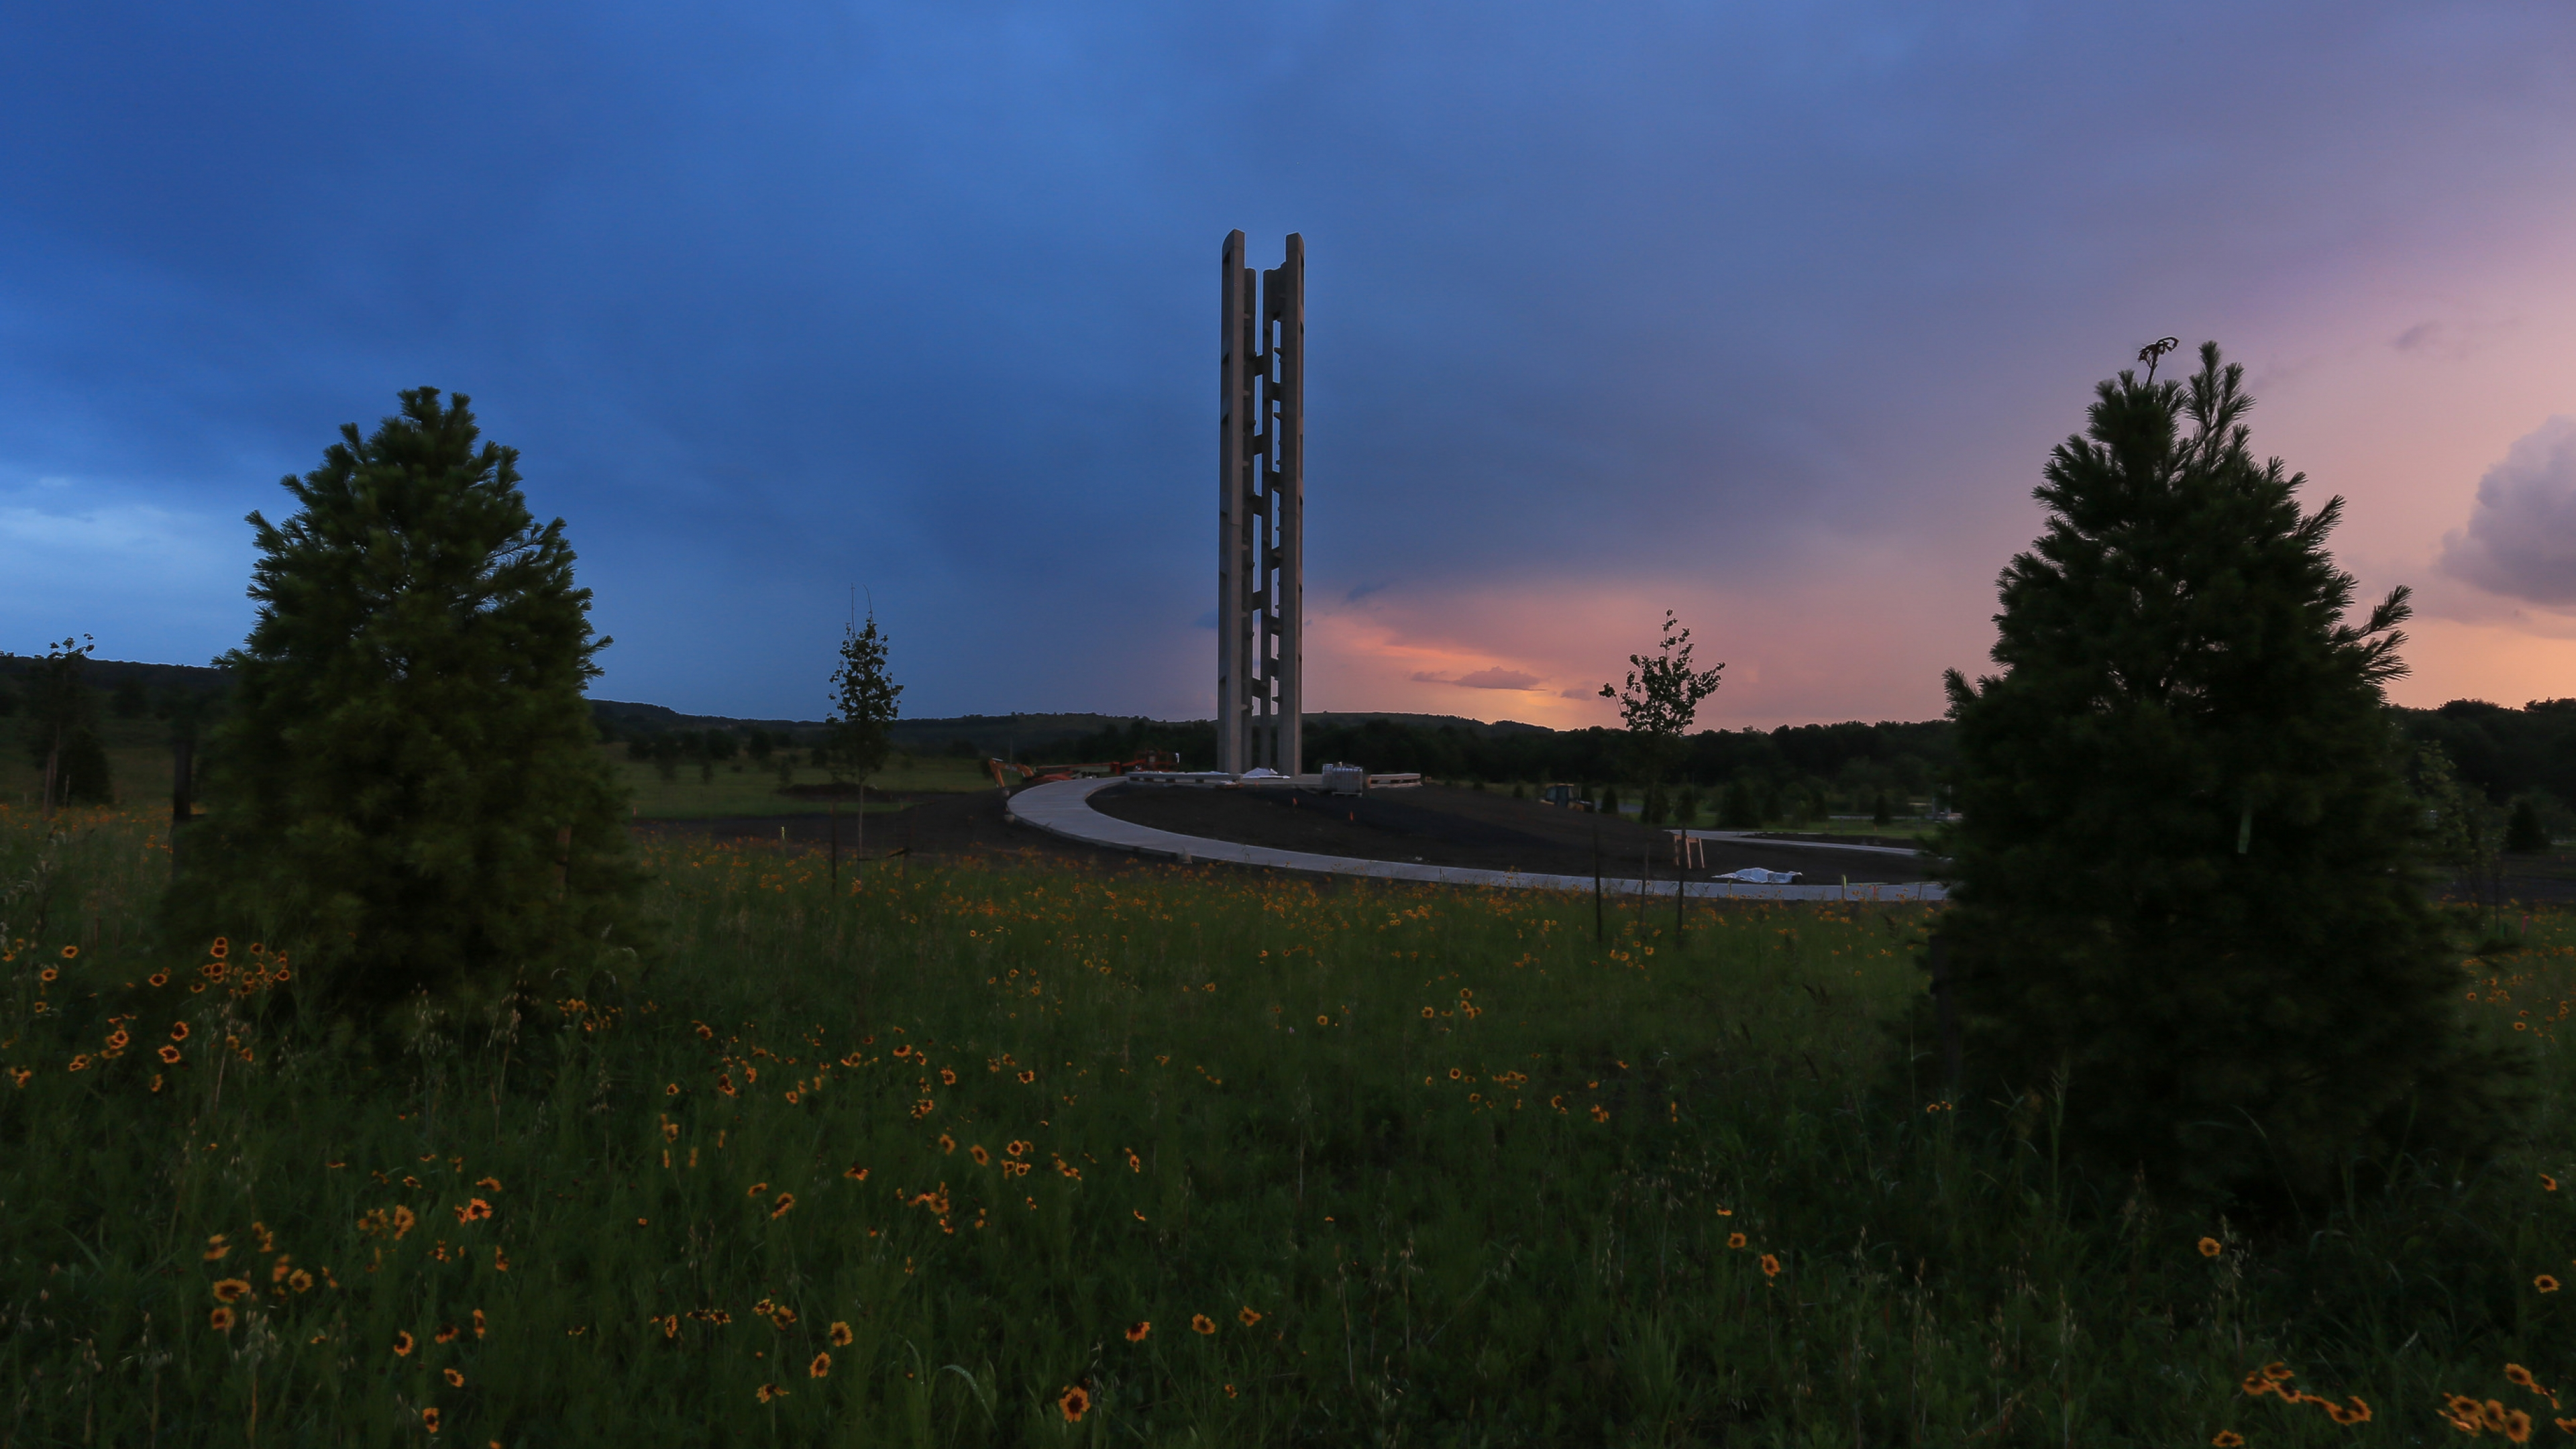 The gray, window-filled Tower of Voices is set between two pine trees against a sunset with deep blue, light purple, and pink clouds